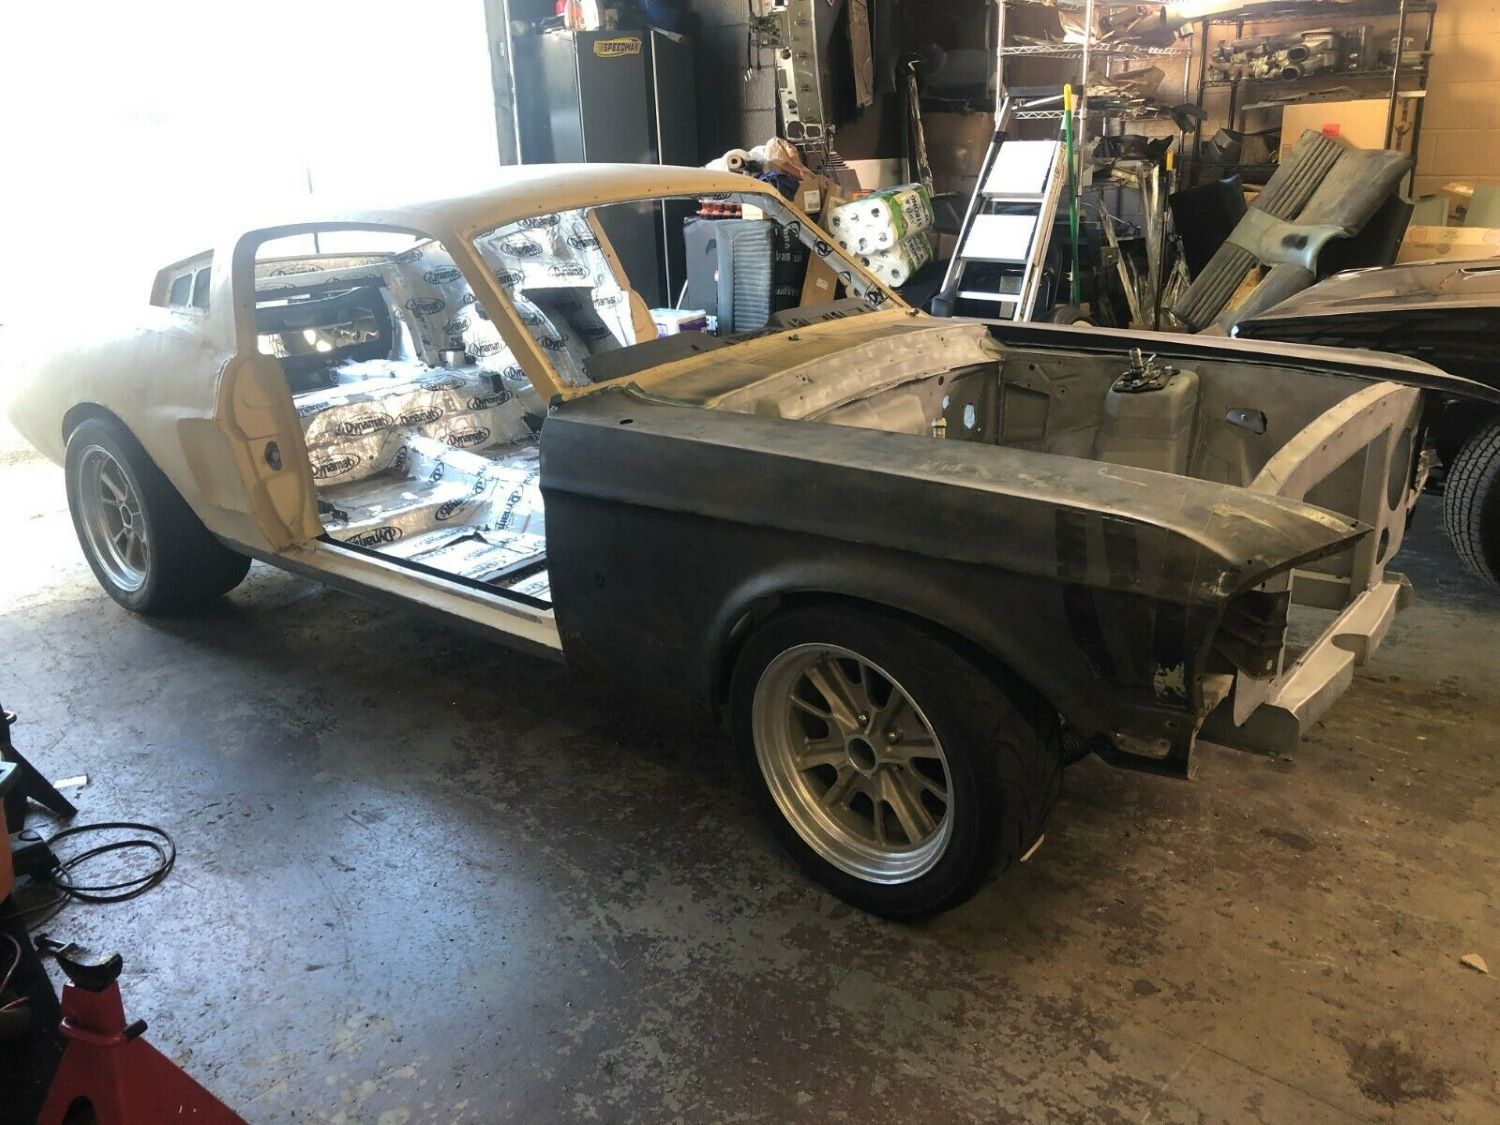 1969 ford mustang m code 351 cold ac *marty report coupe for sale to. In Progress 1967 Ford Mustang Eleanor Clone Project Is Up For Grabs